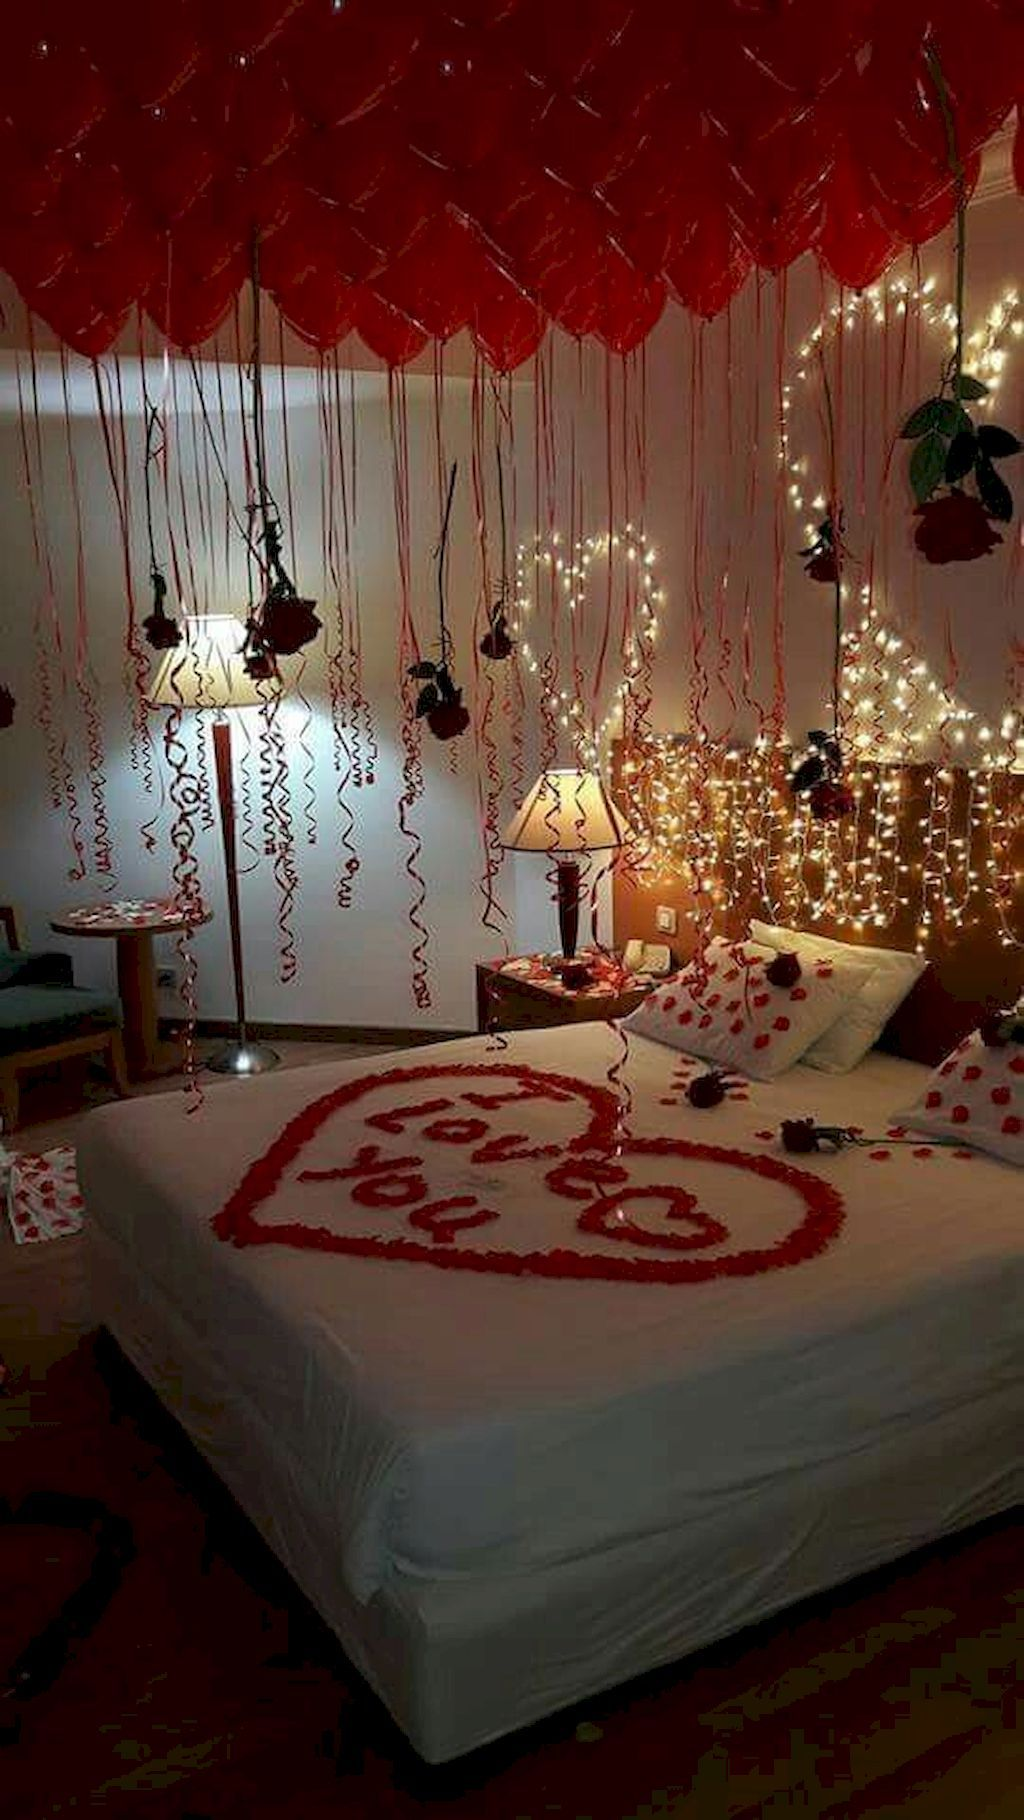 45 Romantic Bedroom Decorations Ideas For Valentine S Day